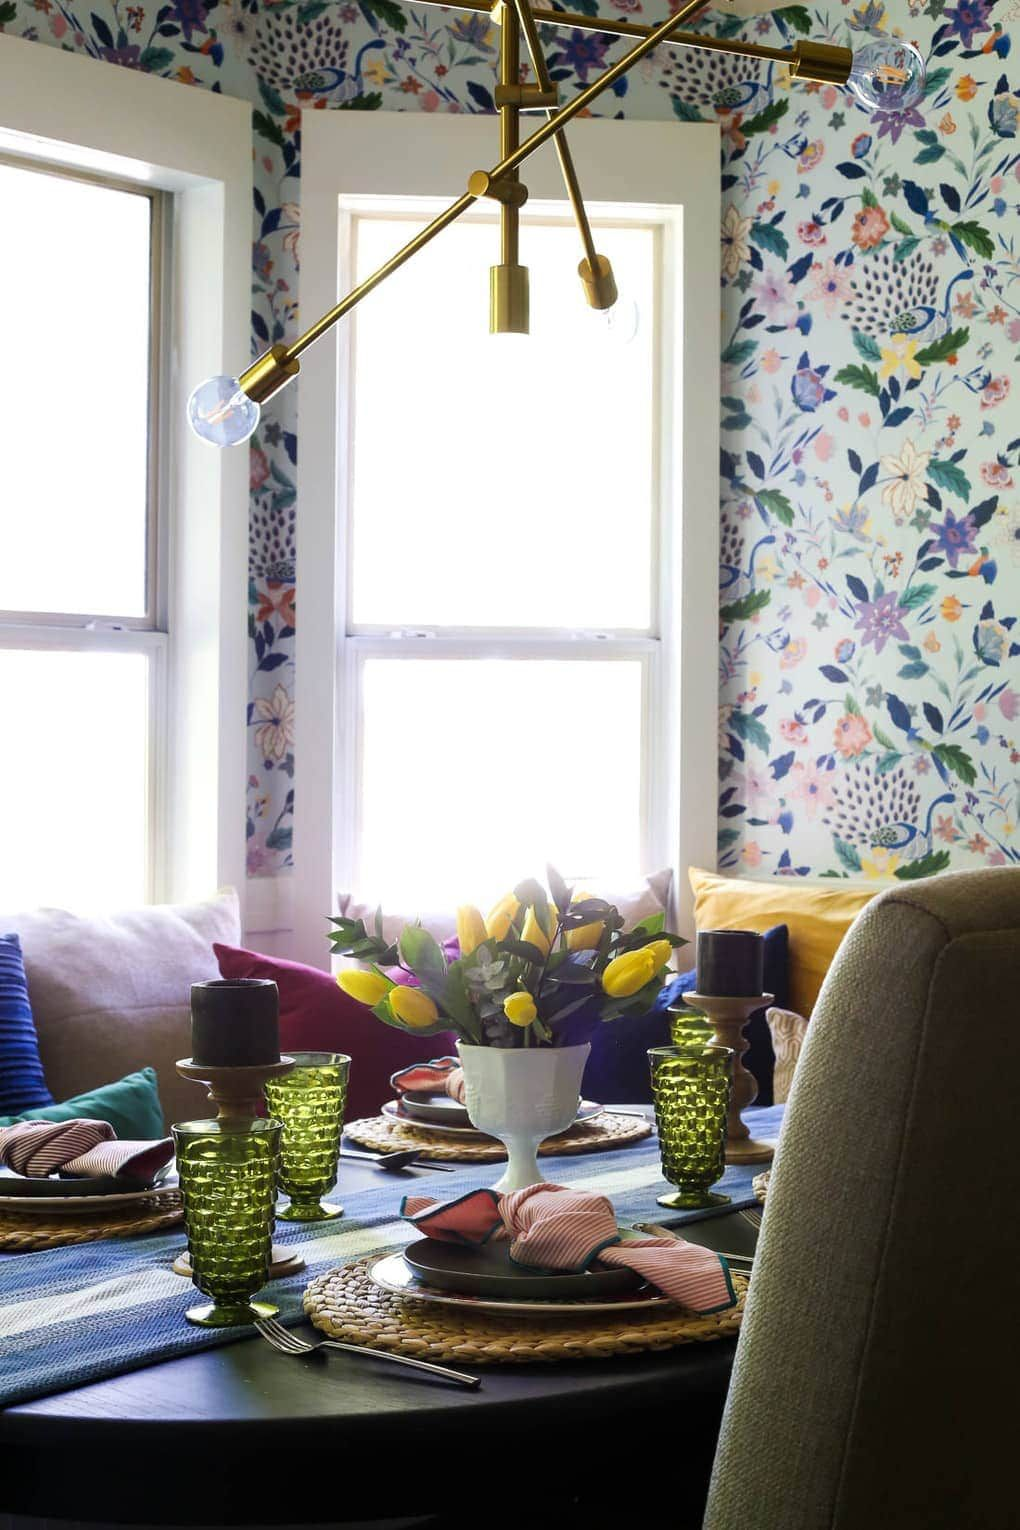 How to install wallpaper. This Anthropologie Sylvia